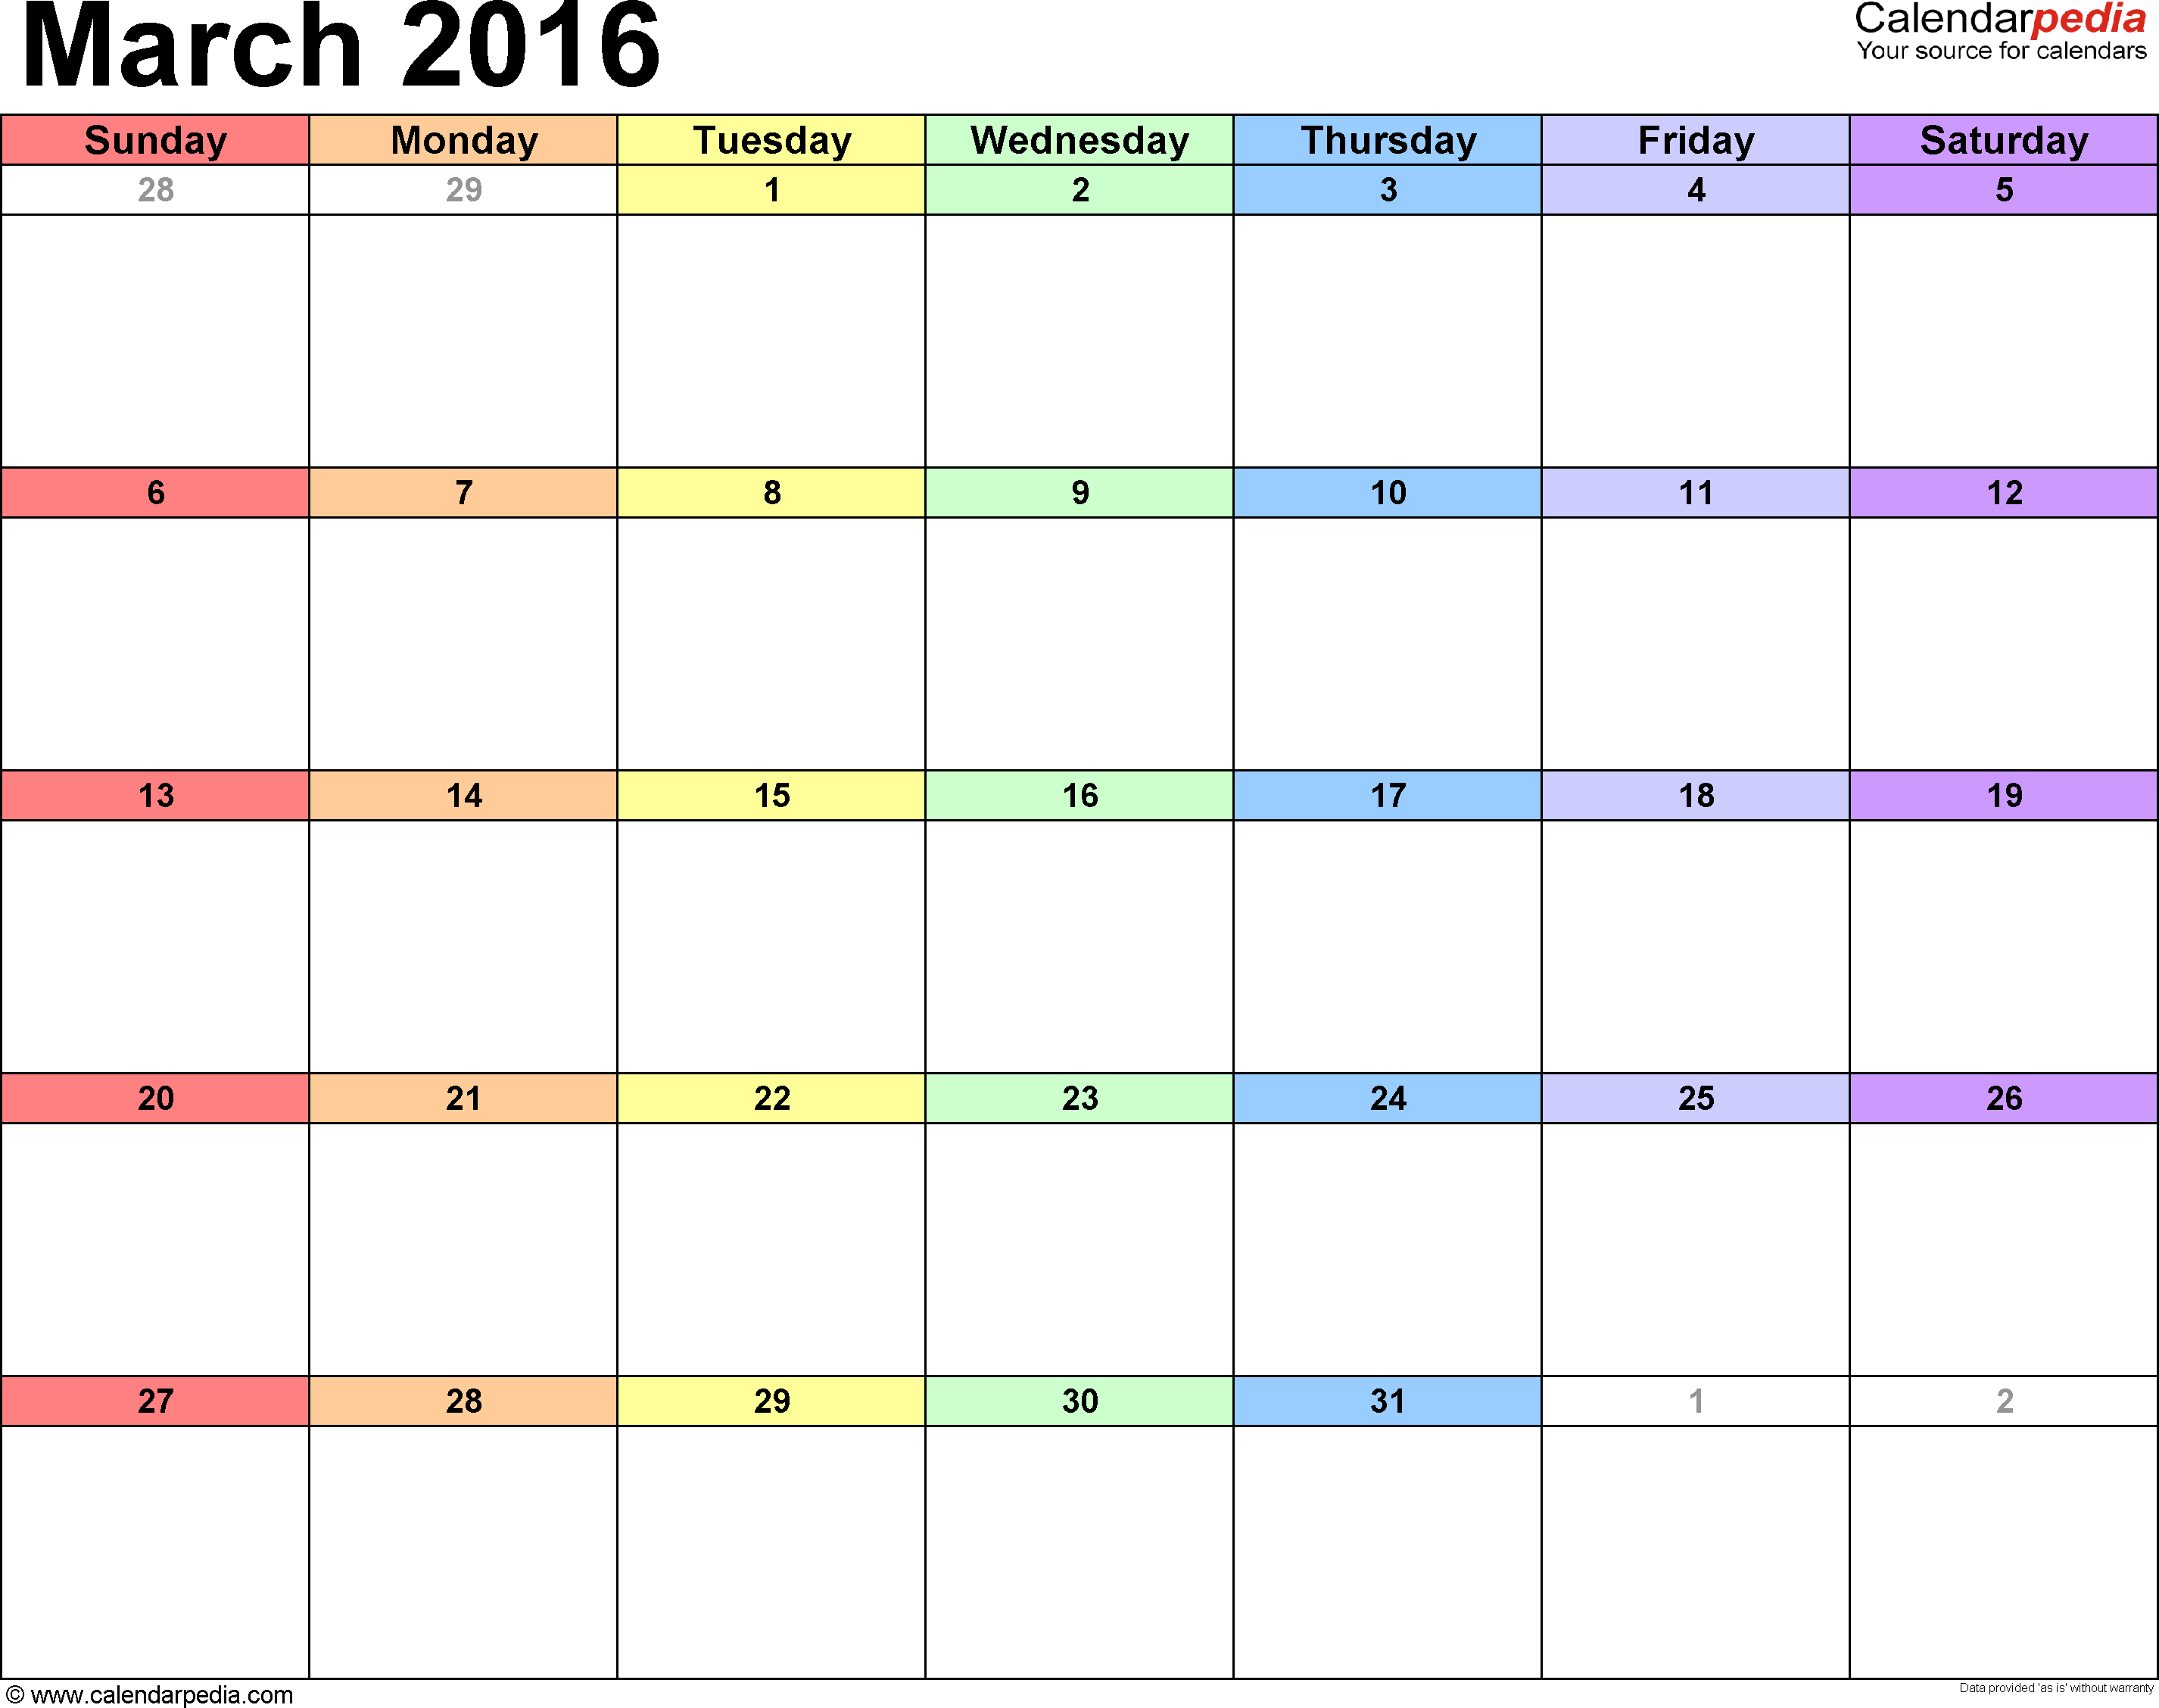 March 2016 Calendars for Word, Excel & PDF